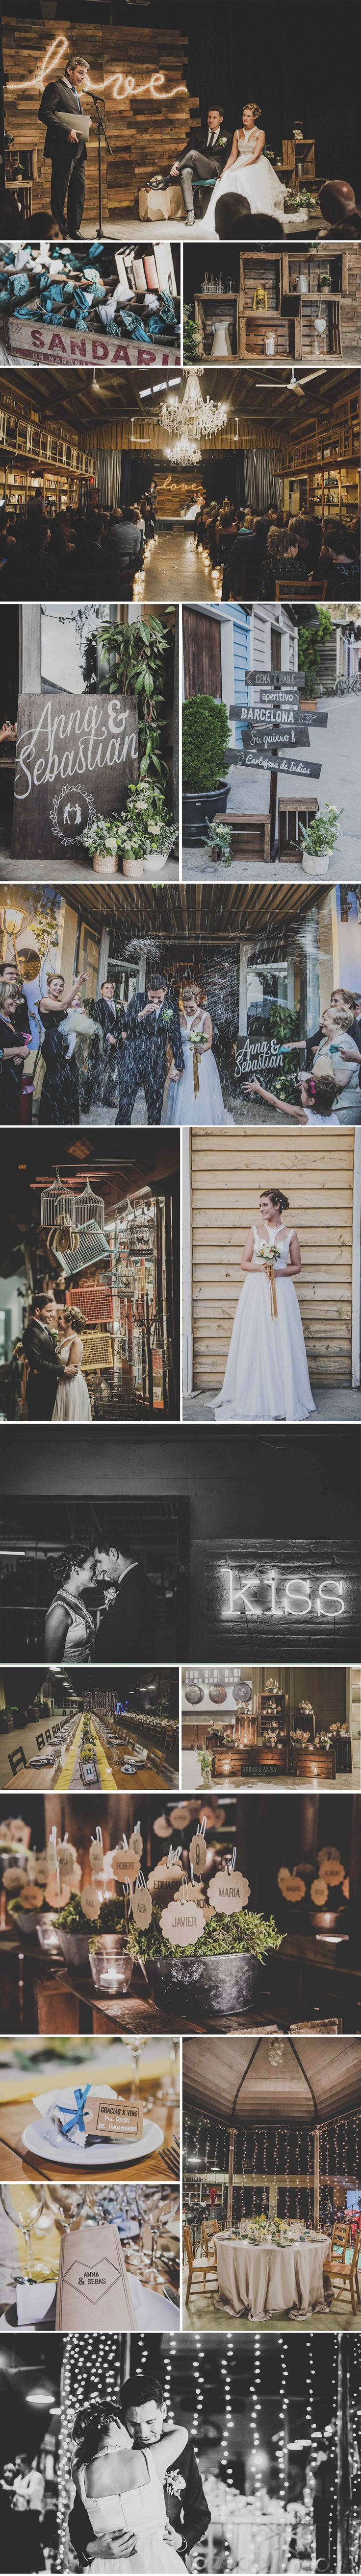 boda vintage mercantic paris berlin wedding planners